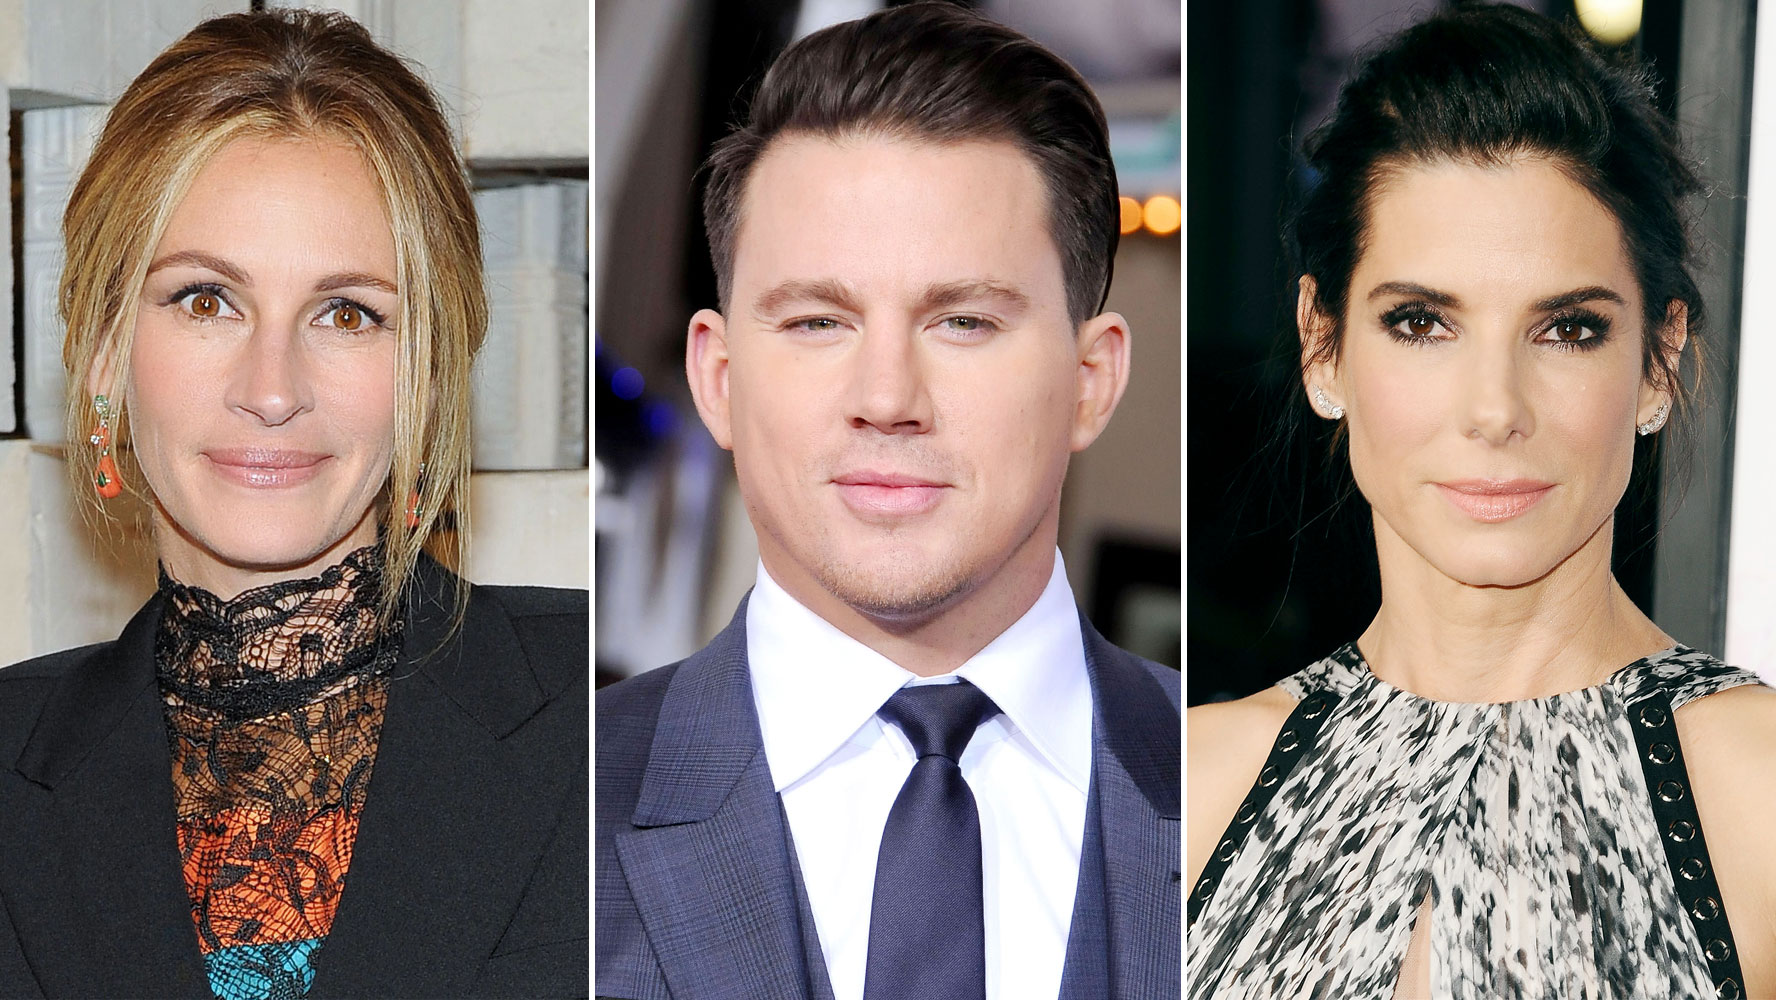 15 Celebrities Whose Hidden Musical Talents Will Surprise You